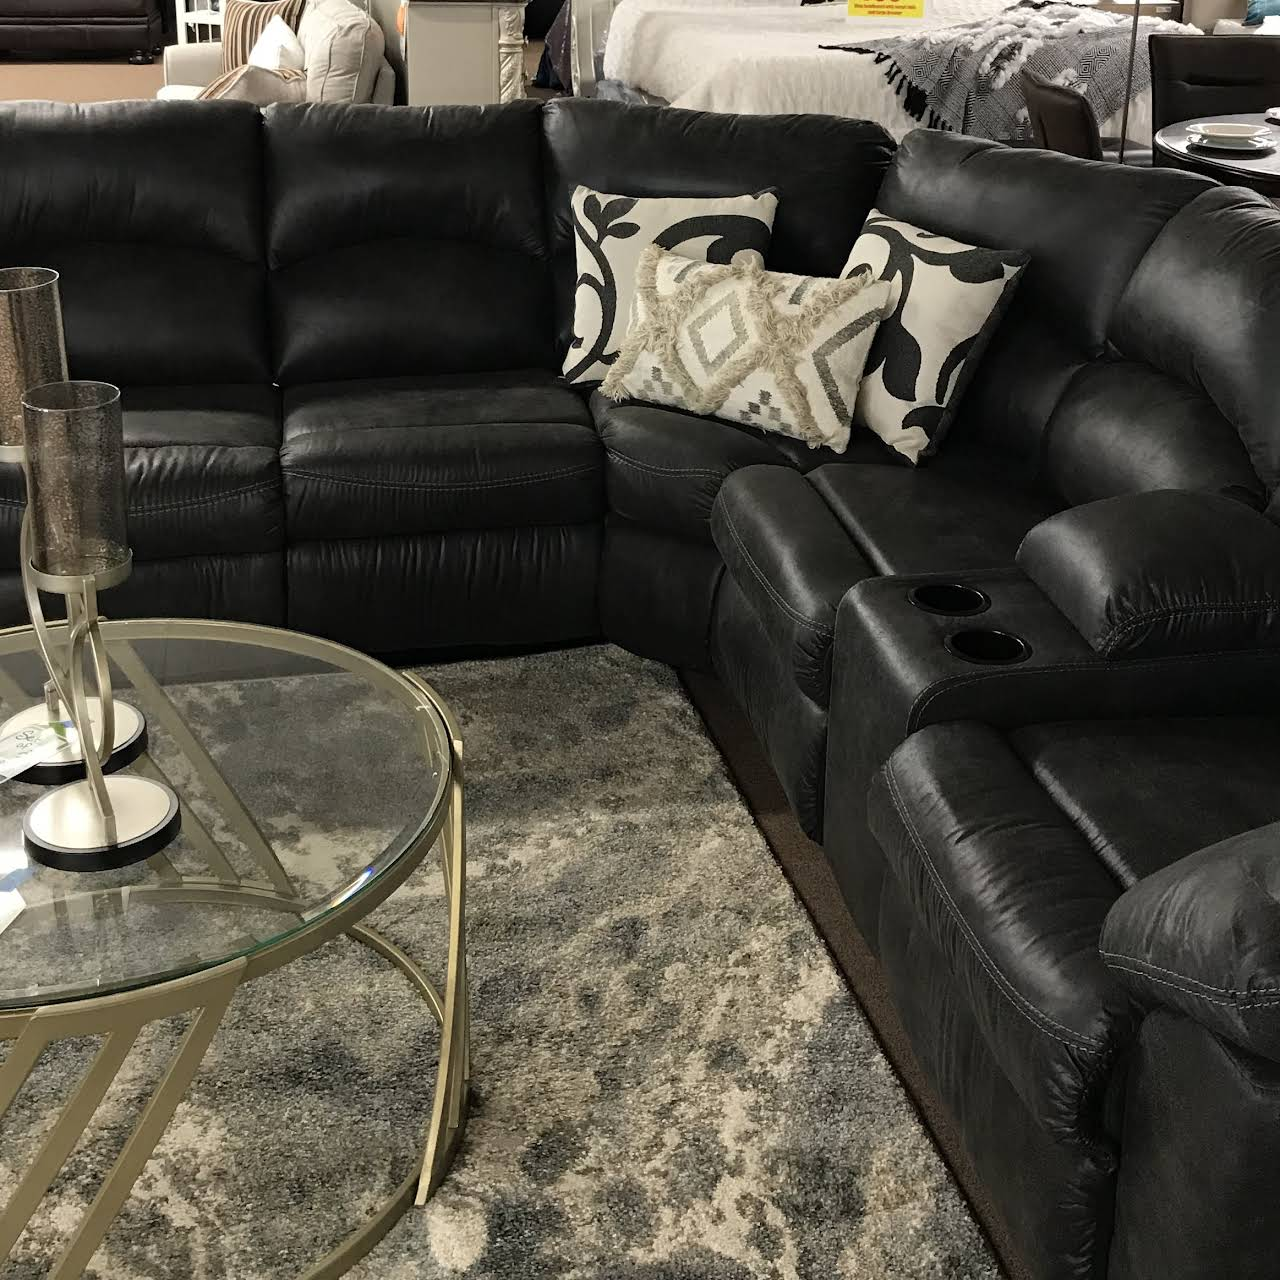 Homespace Discount Furnishings At Skyline Furniture Store In